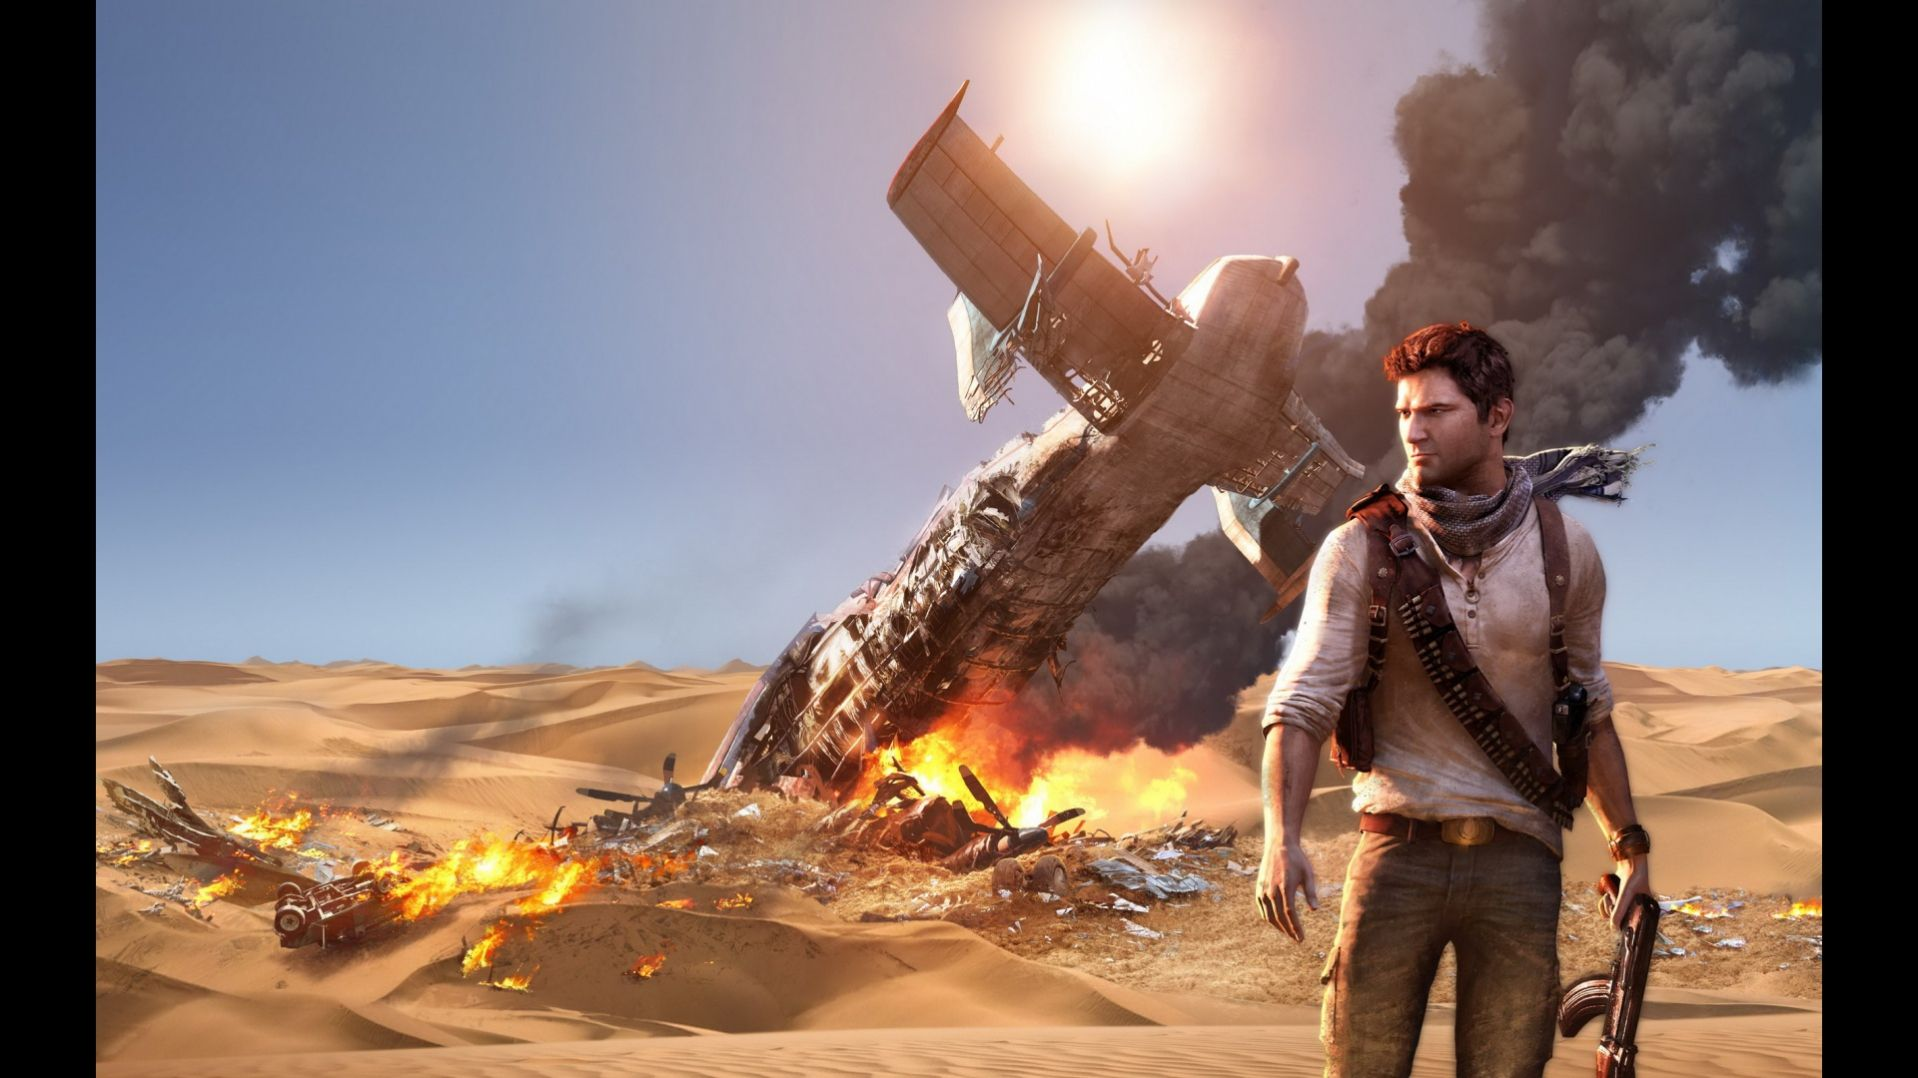 Uncharted Wallpapers